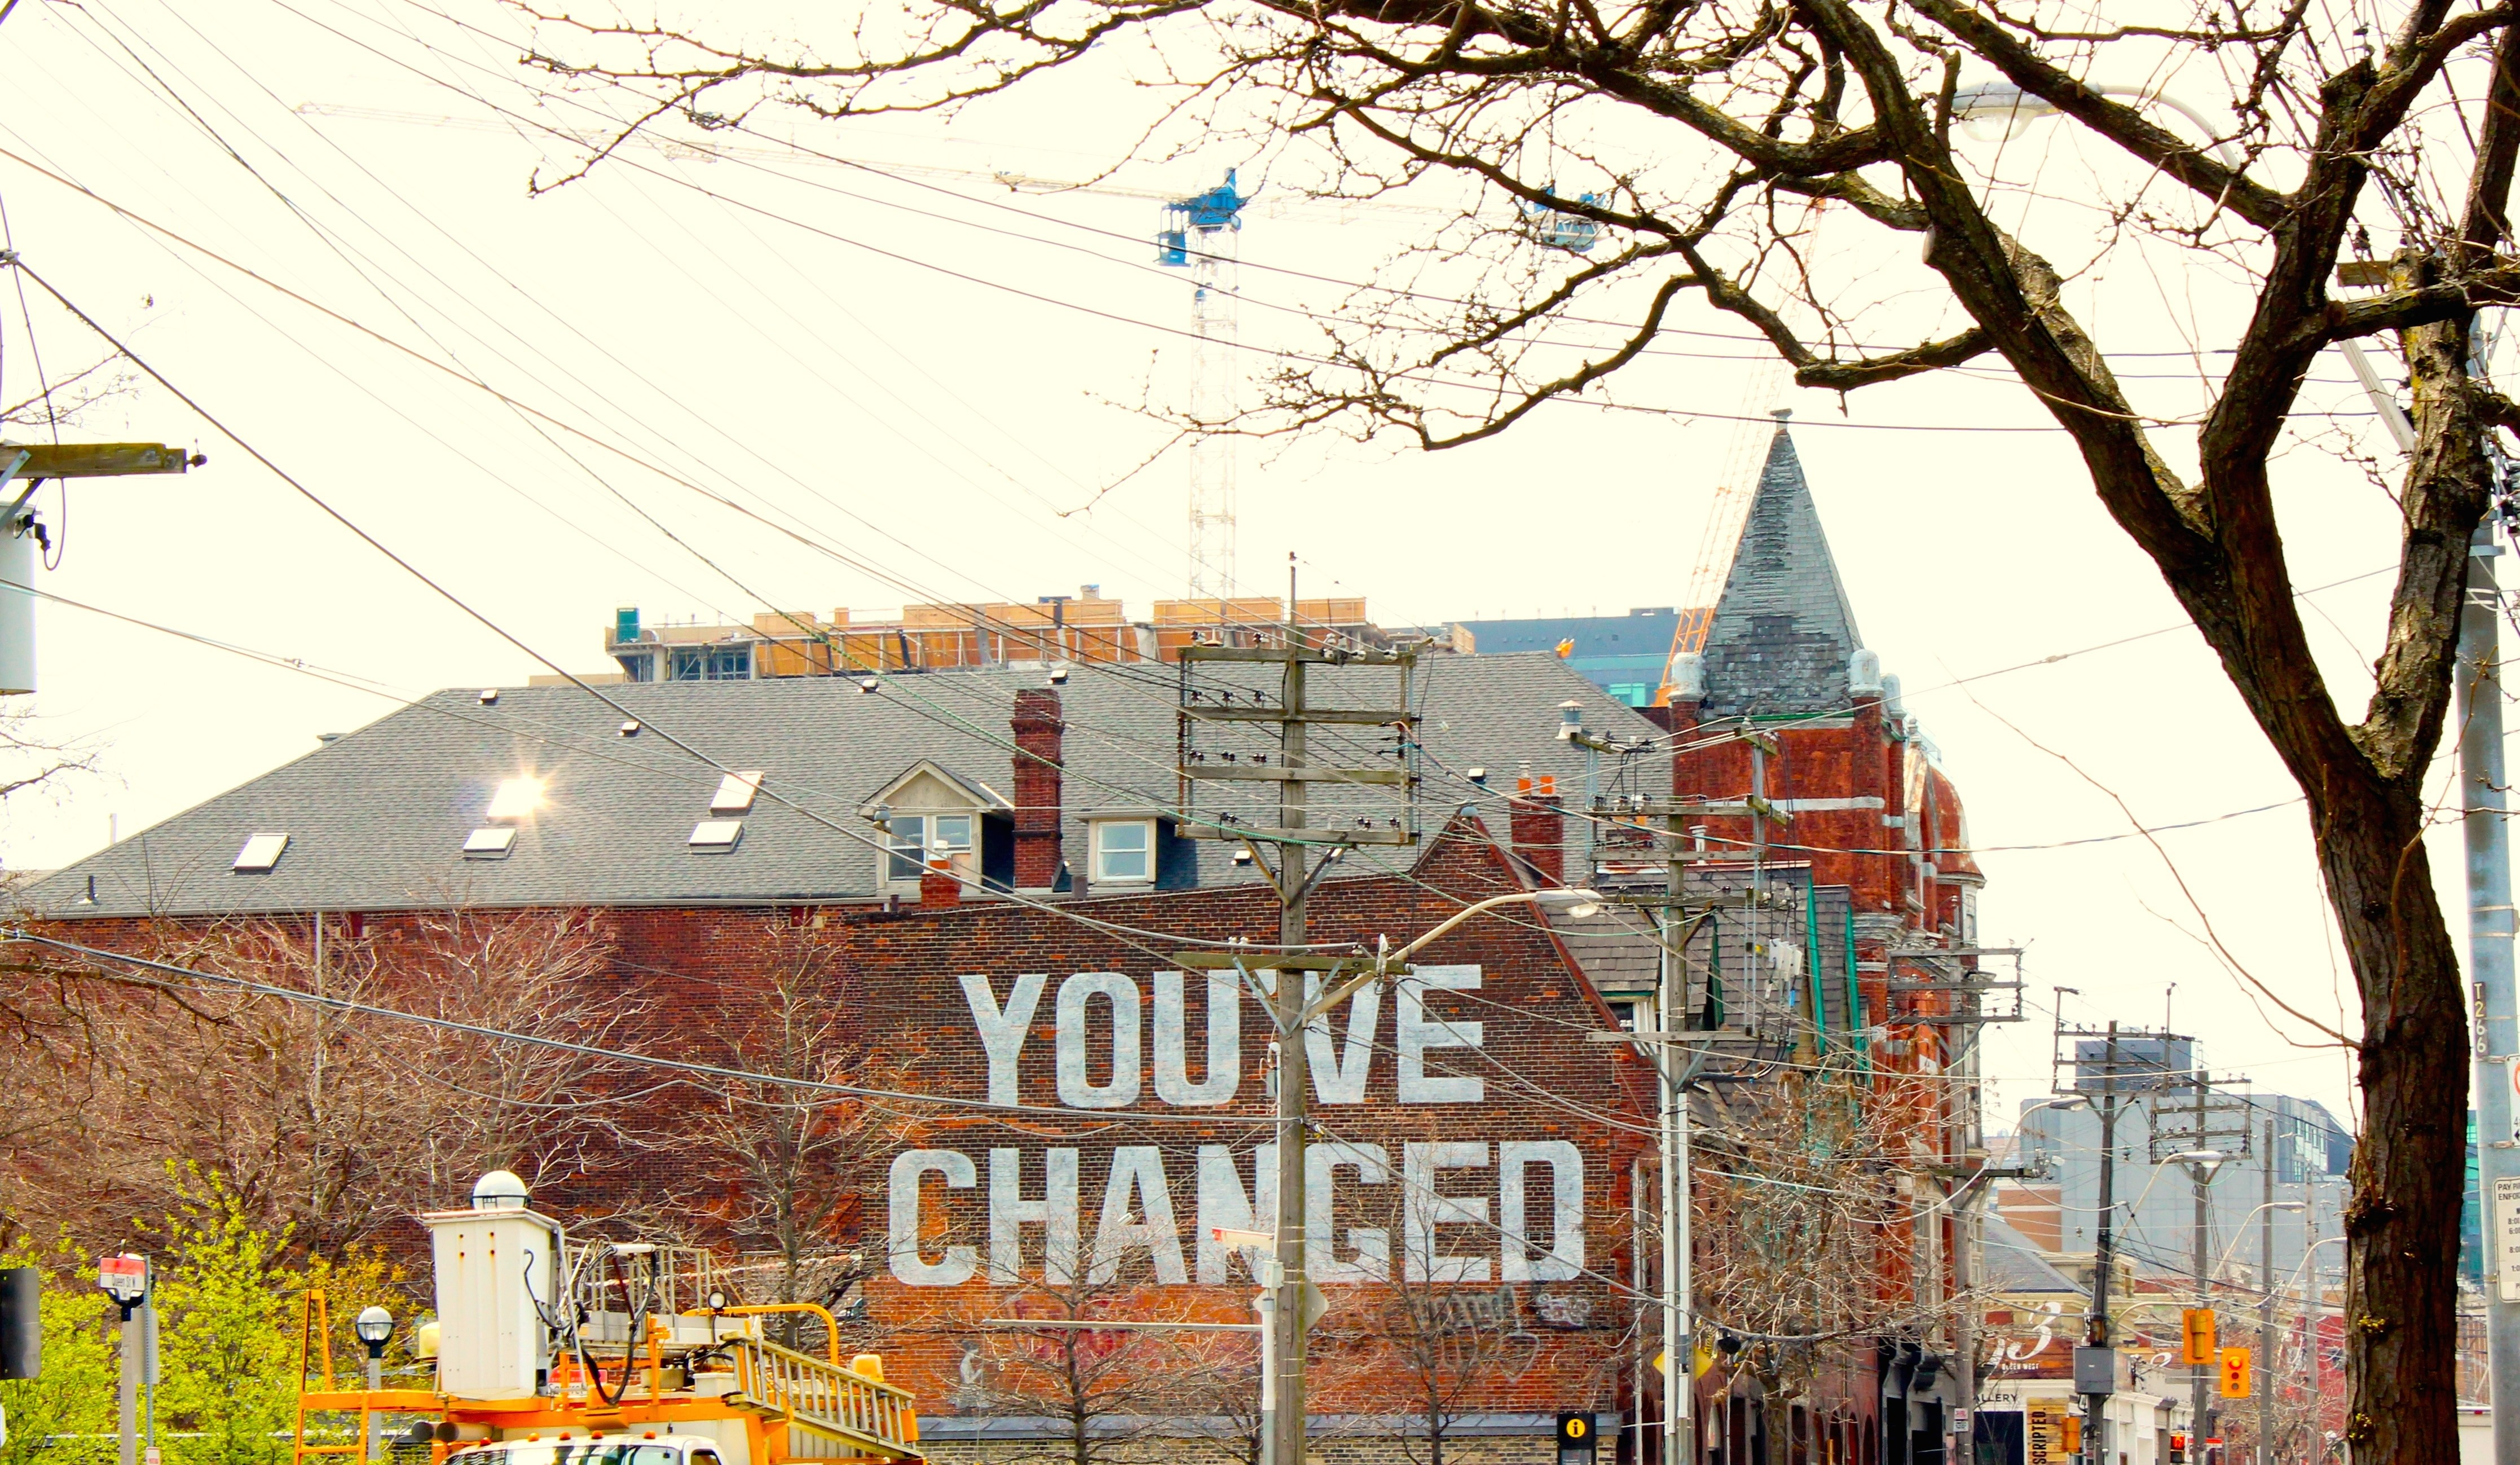 You've Changed Mural